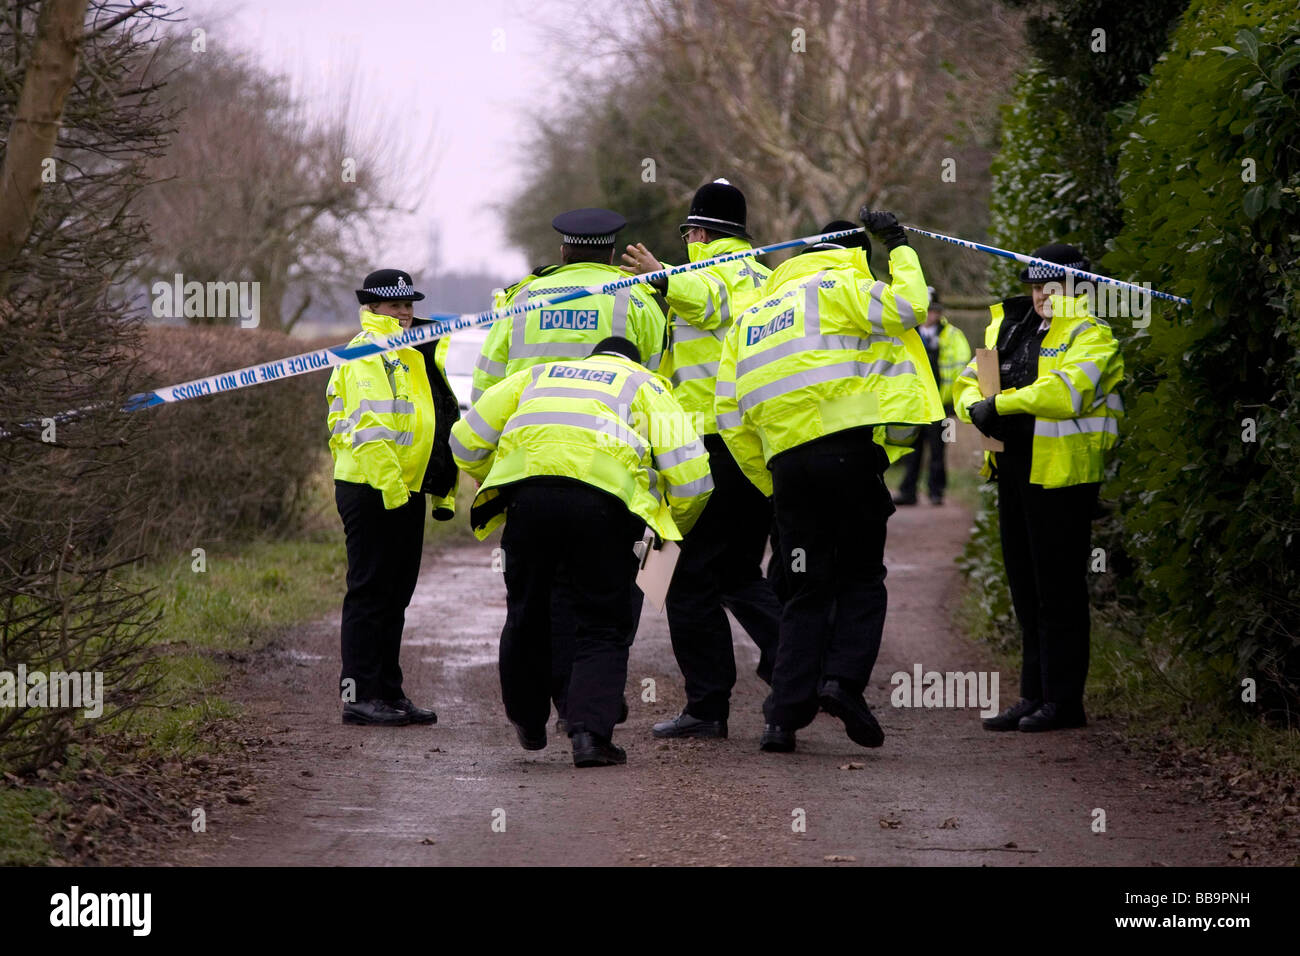 Police in yellow flourescent jackets cross a police tape line on the way to search for clues after the discovery - Stock Image